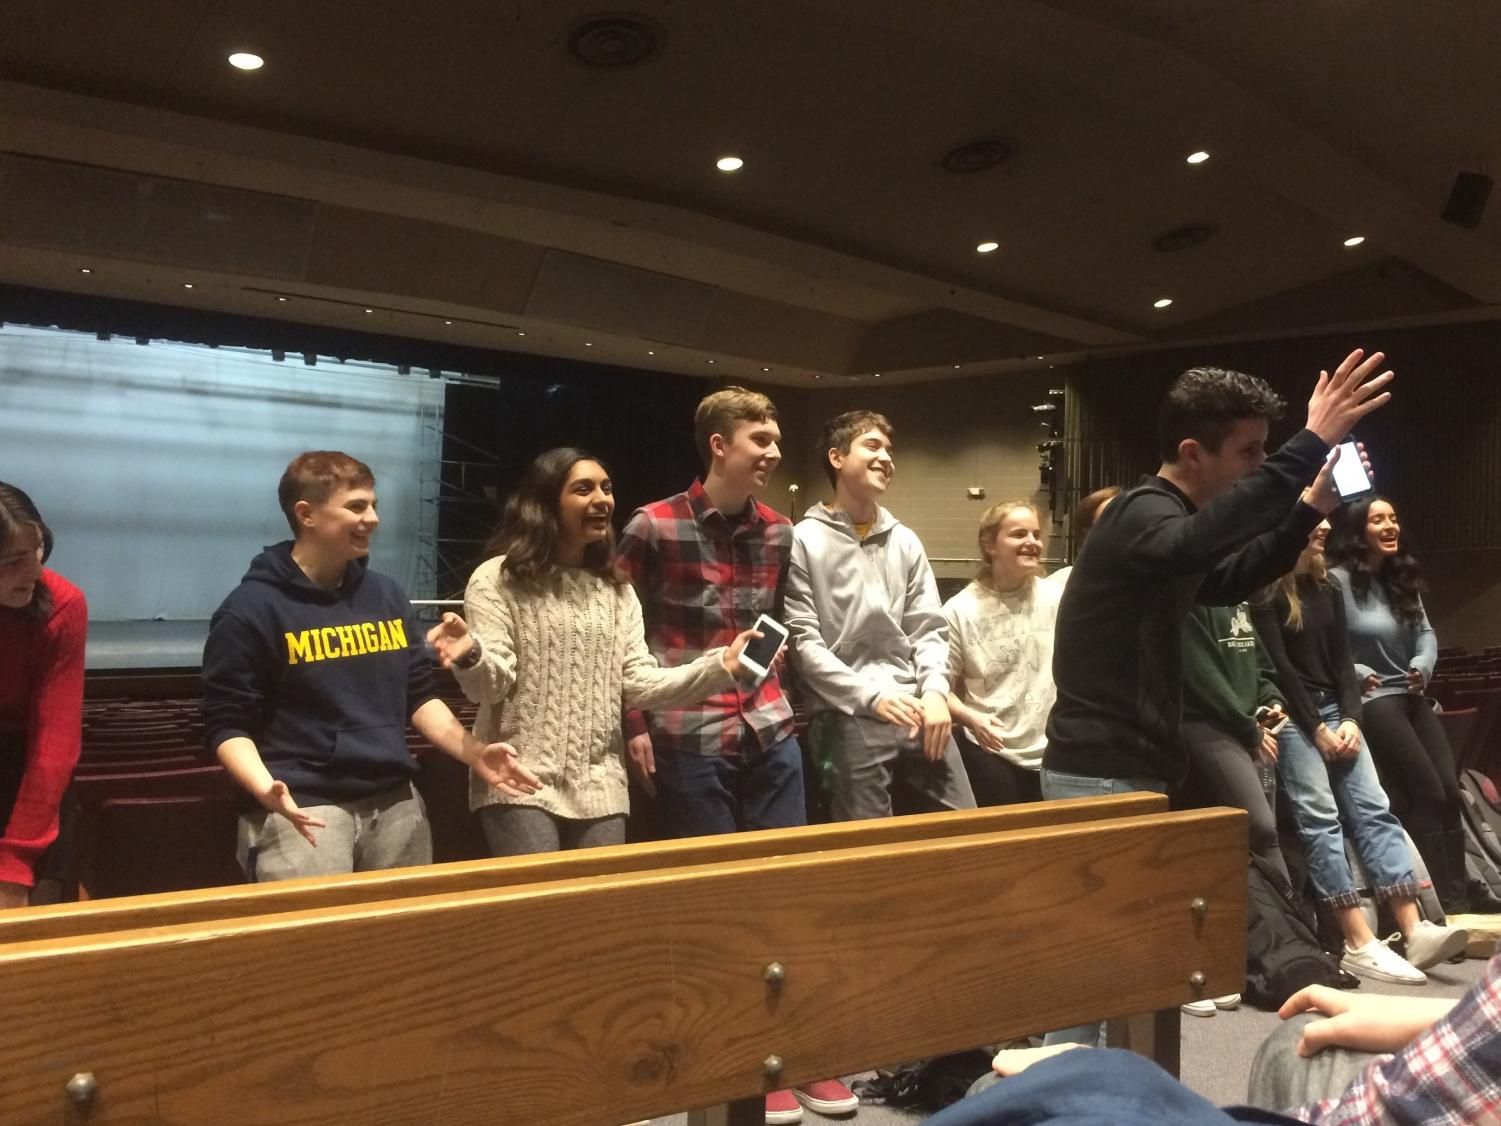 Senior Davis Gestiehr and the student directors of the talent show shout the theme of this year's show: